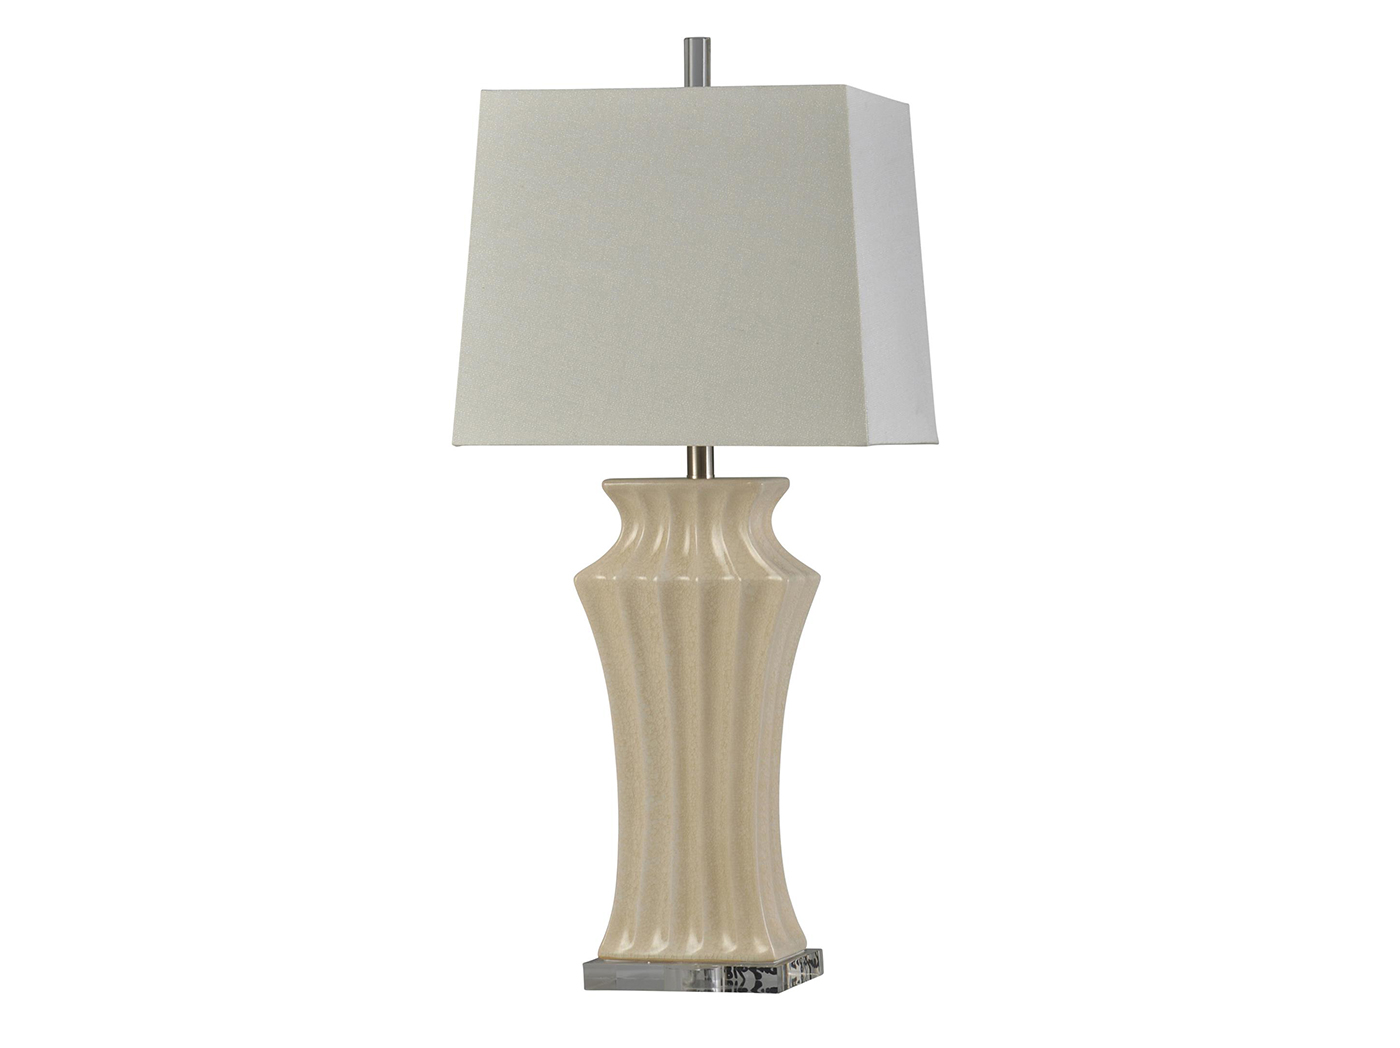 Ivory Ceramic Table Lamp Steinhafels